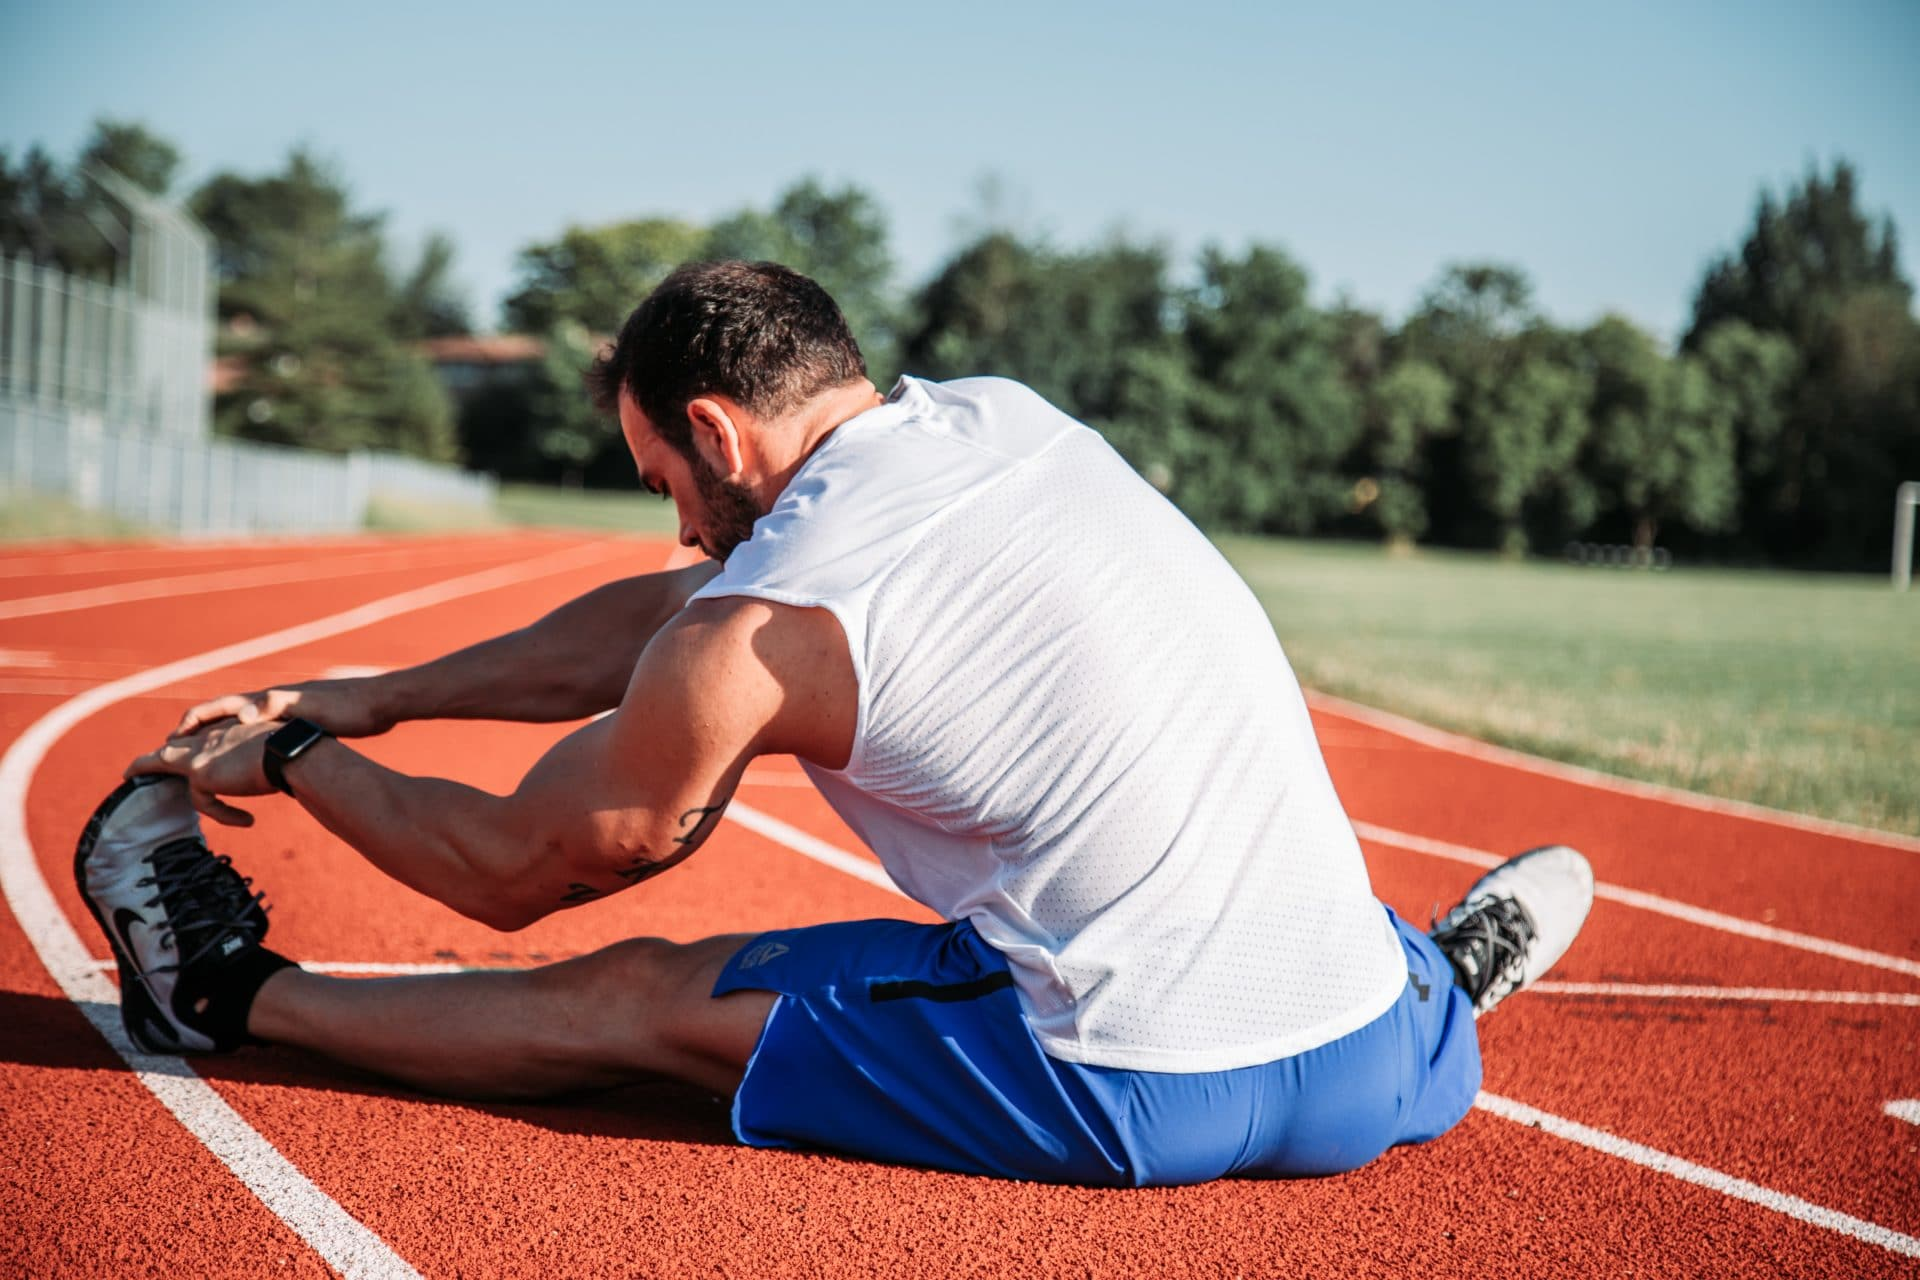 athlete stretching on running track